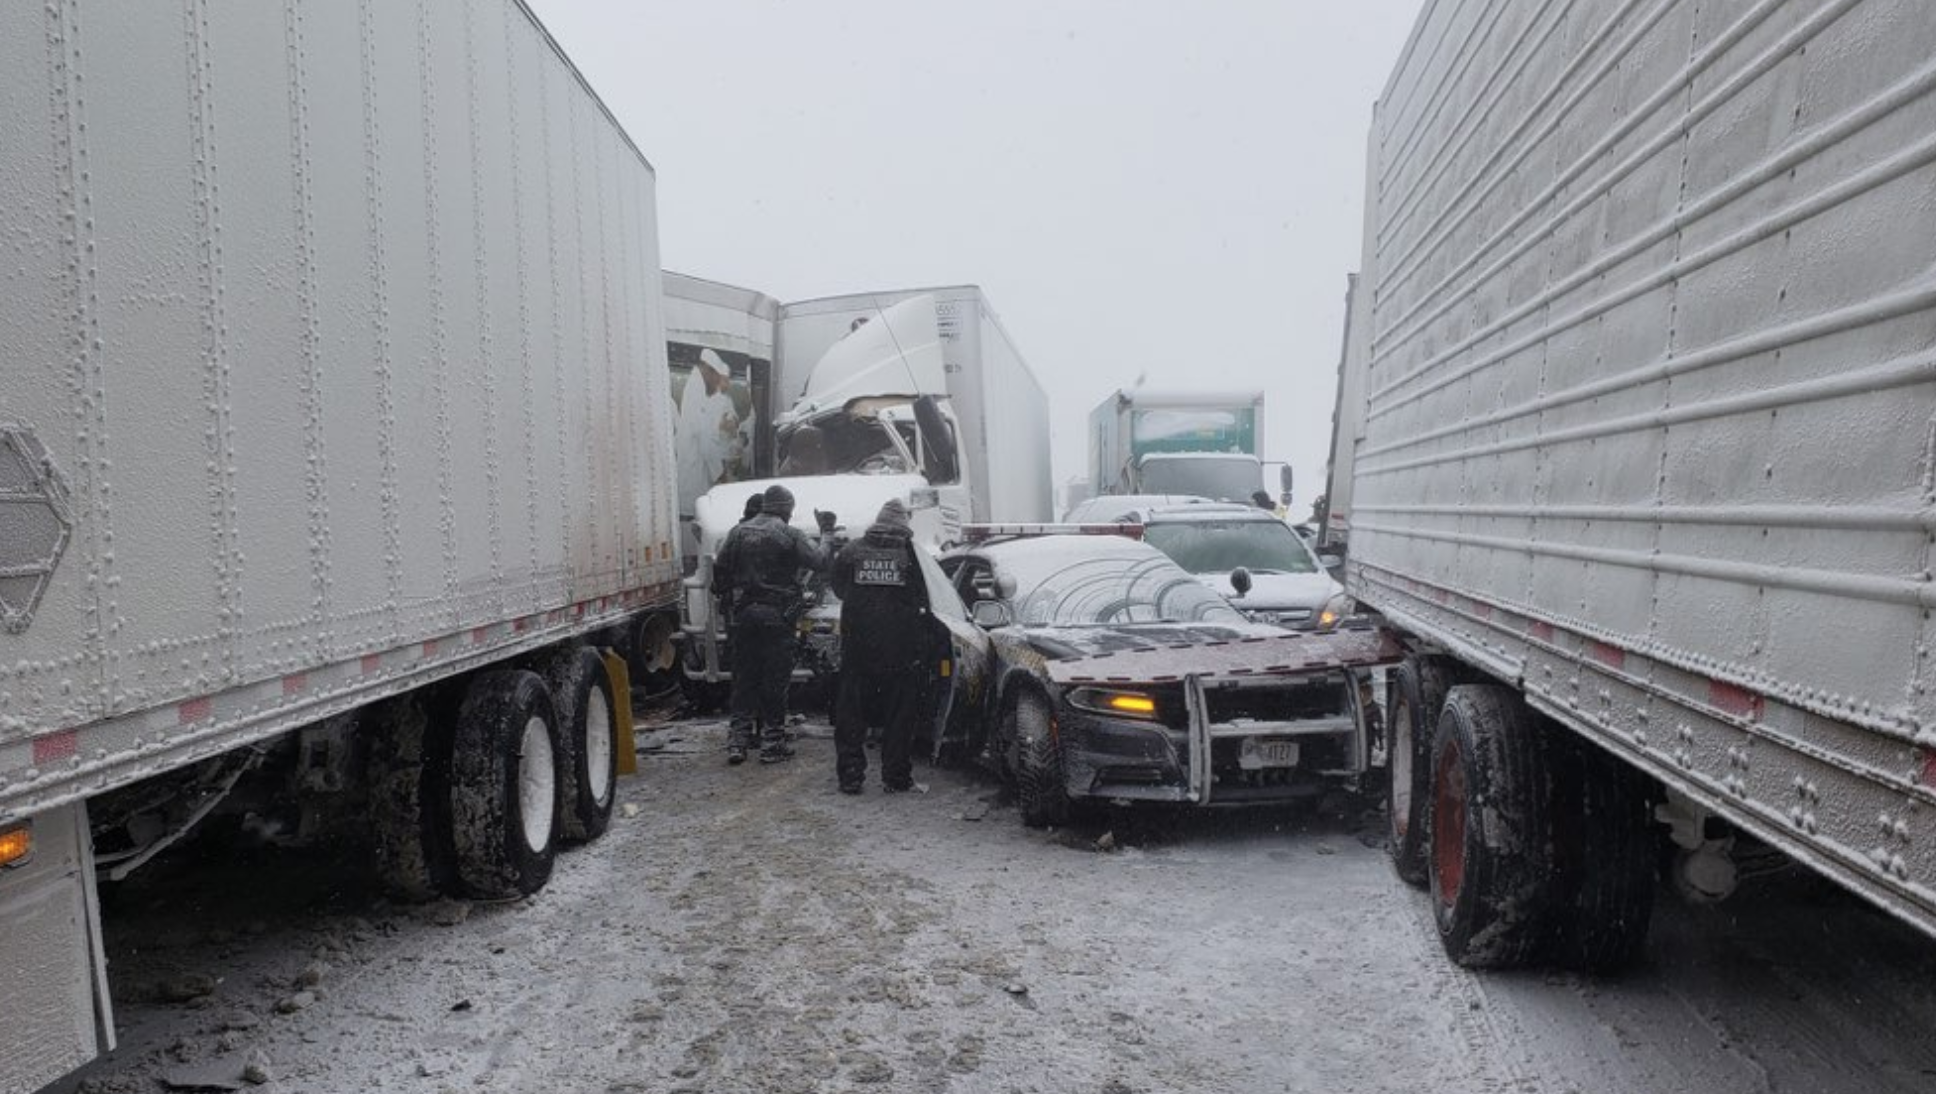 21 vehicles in whiteout pileup on NYS Thruway Wednesday